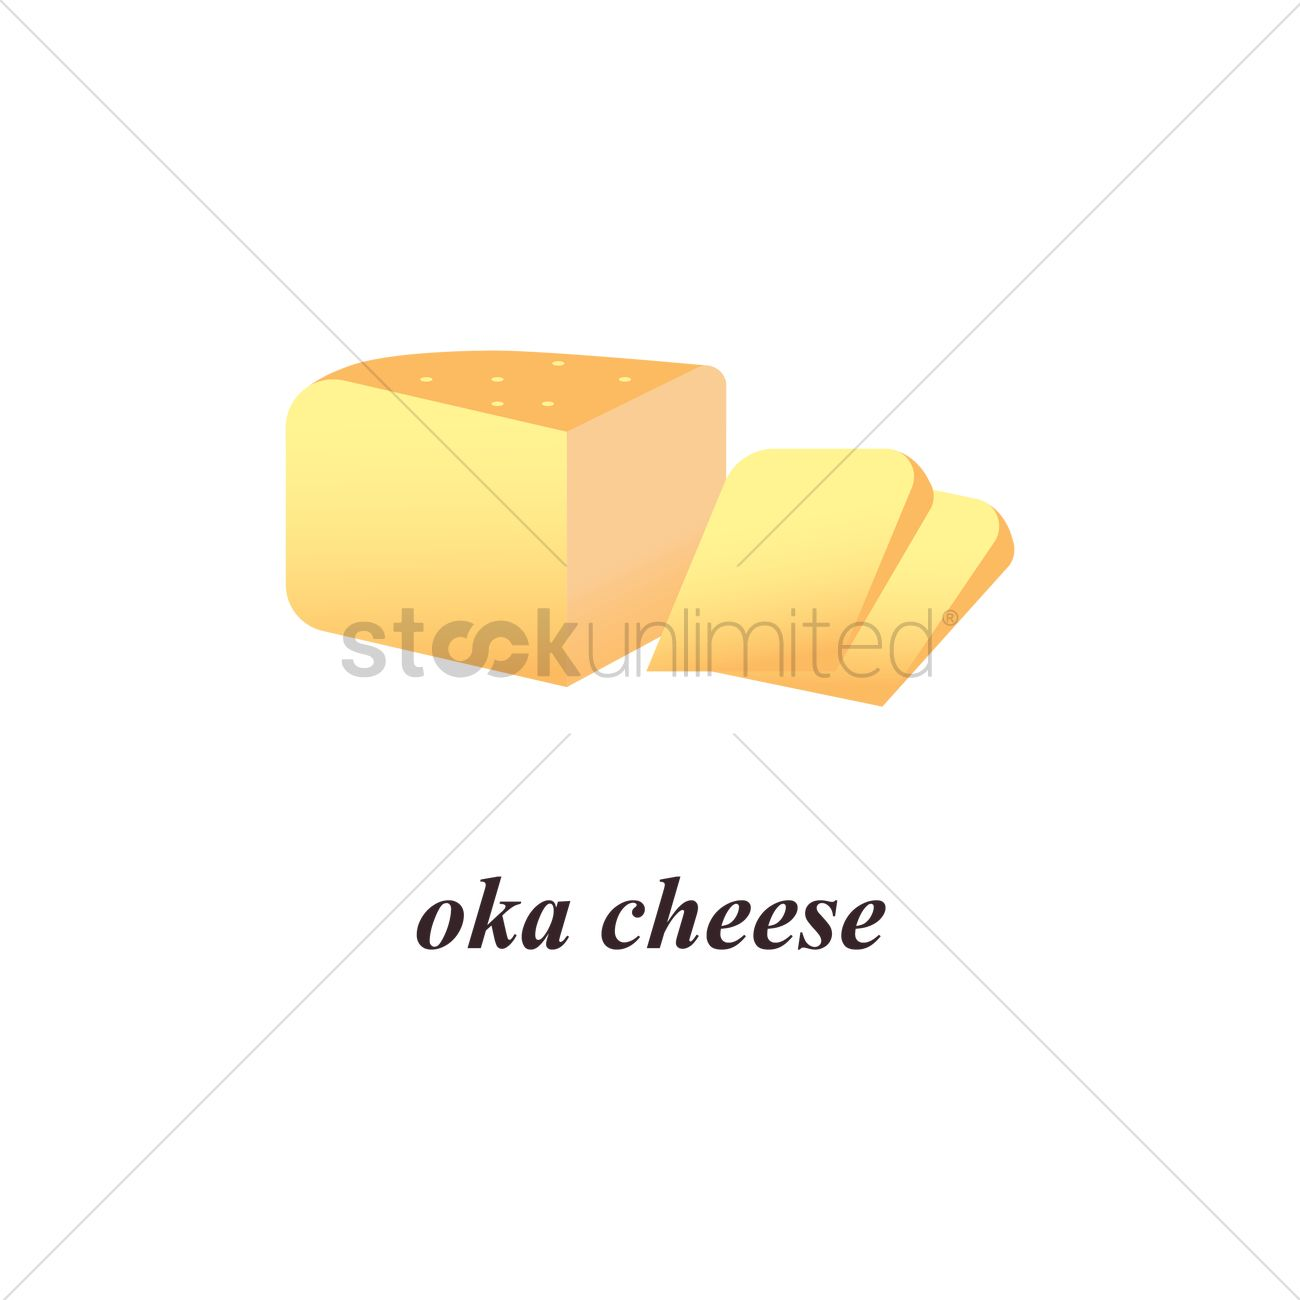 Oka cheese Vector Image.